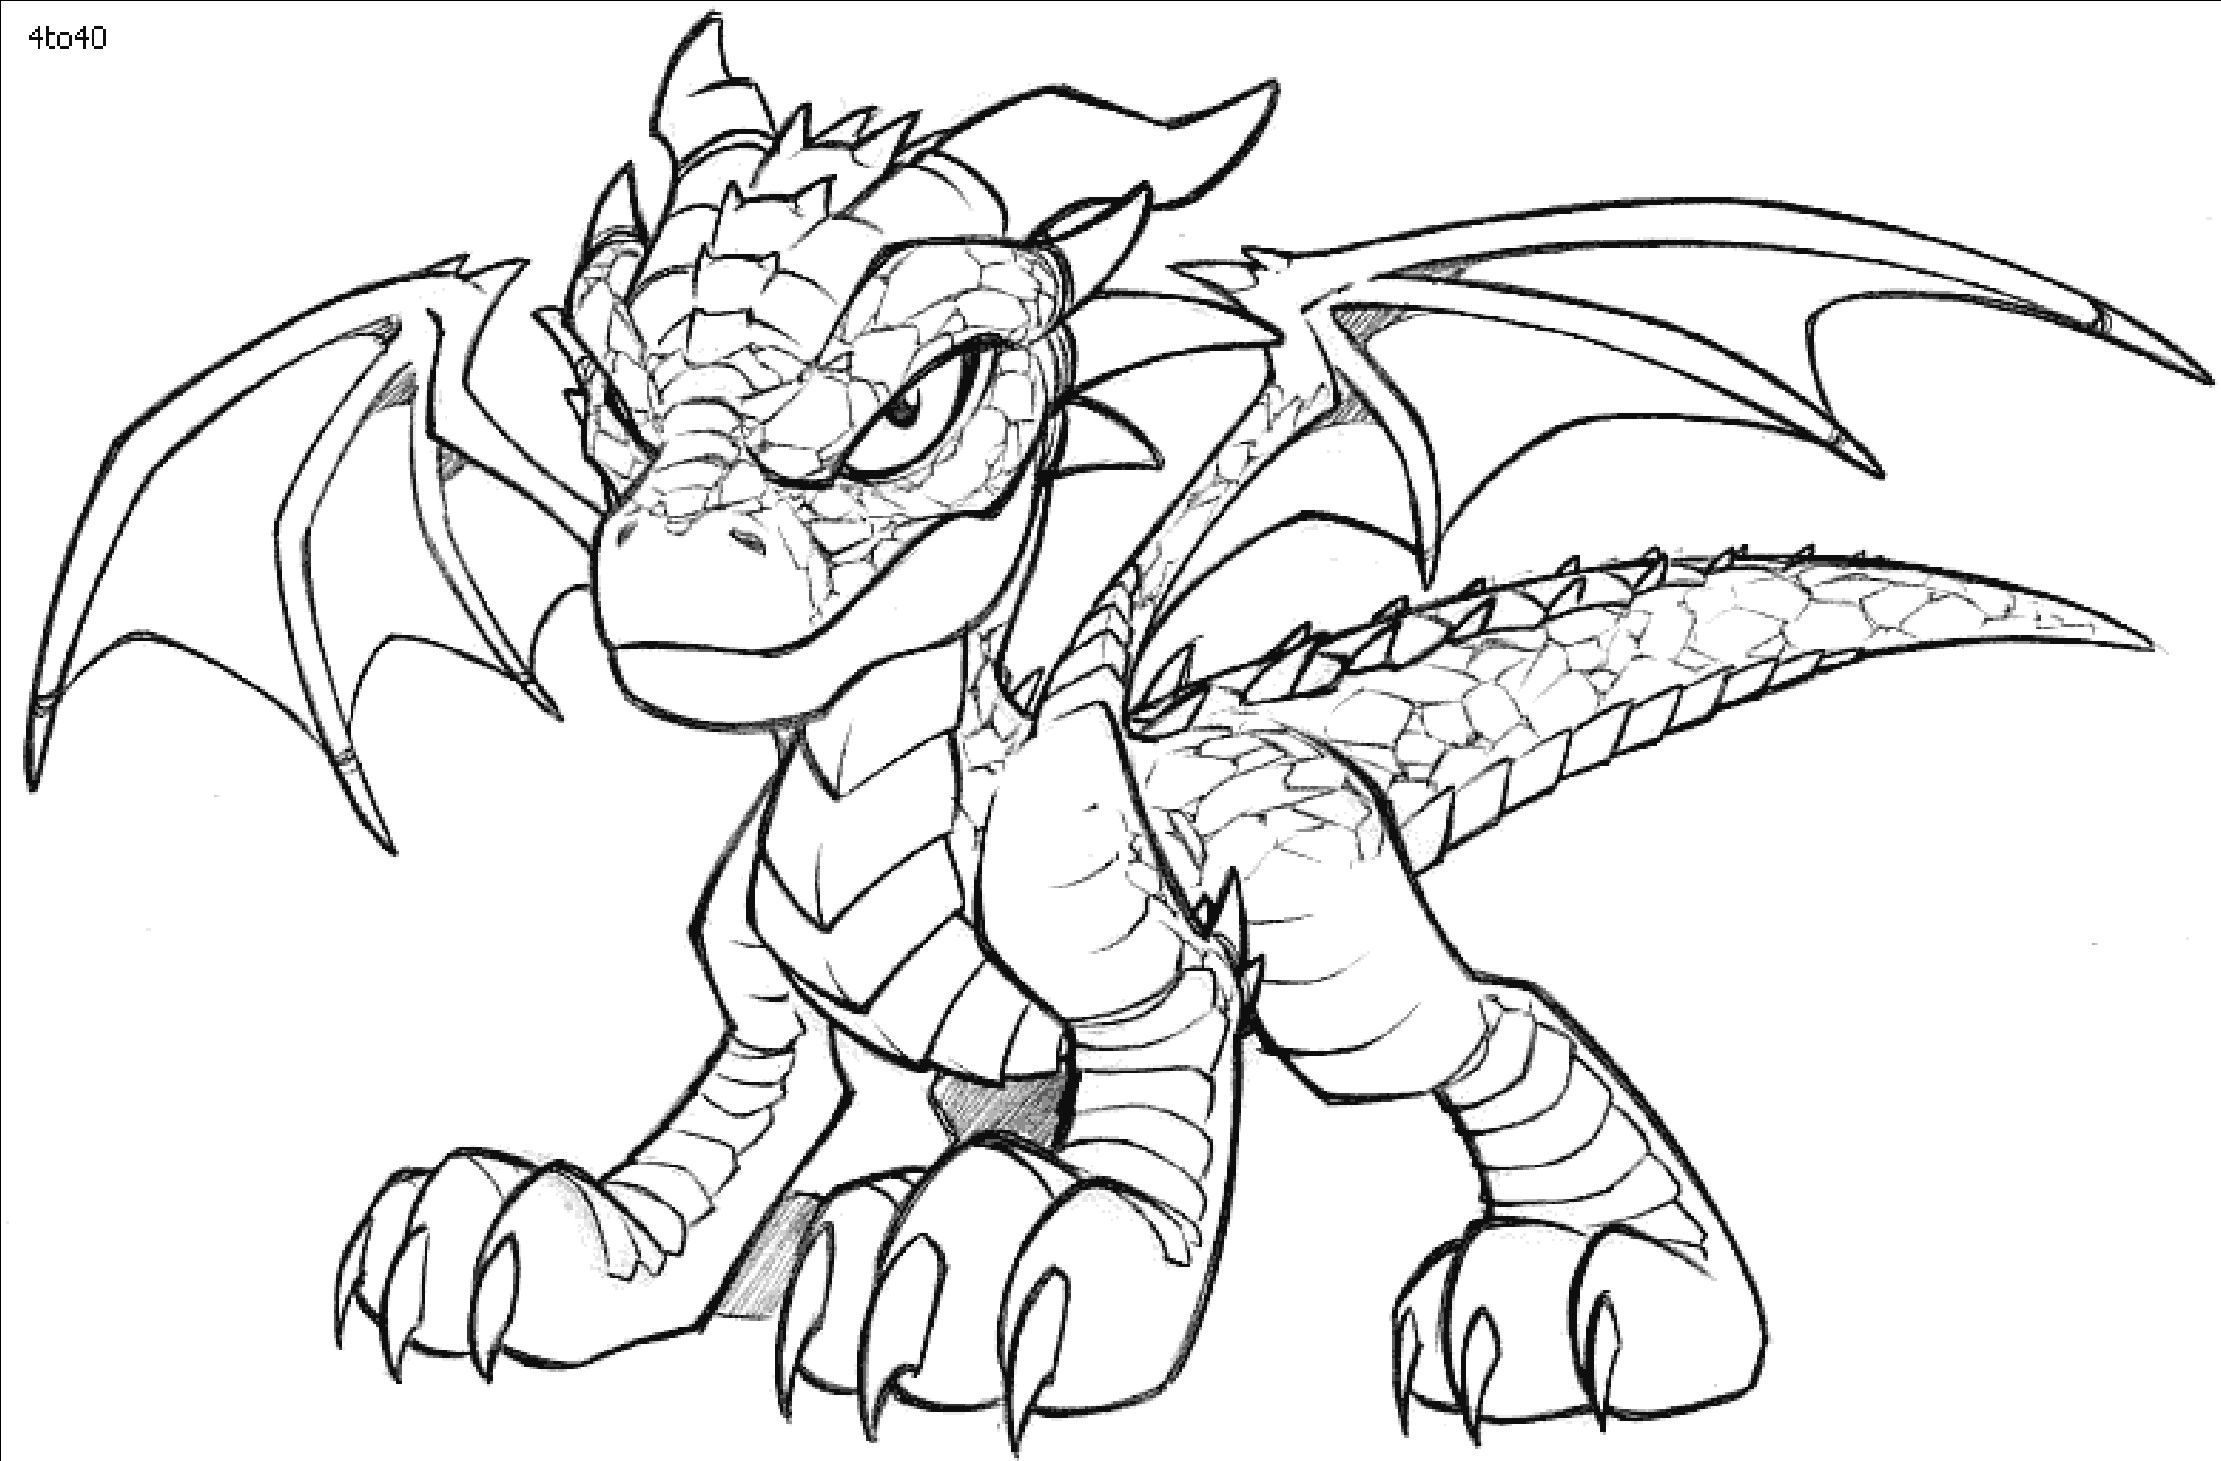 Cool Dragon Coloring Pages Ideas Free Coloring Sheets Dragon Coloring Page Skull Coloring Pages Dragon Pictures